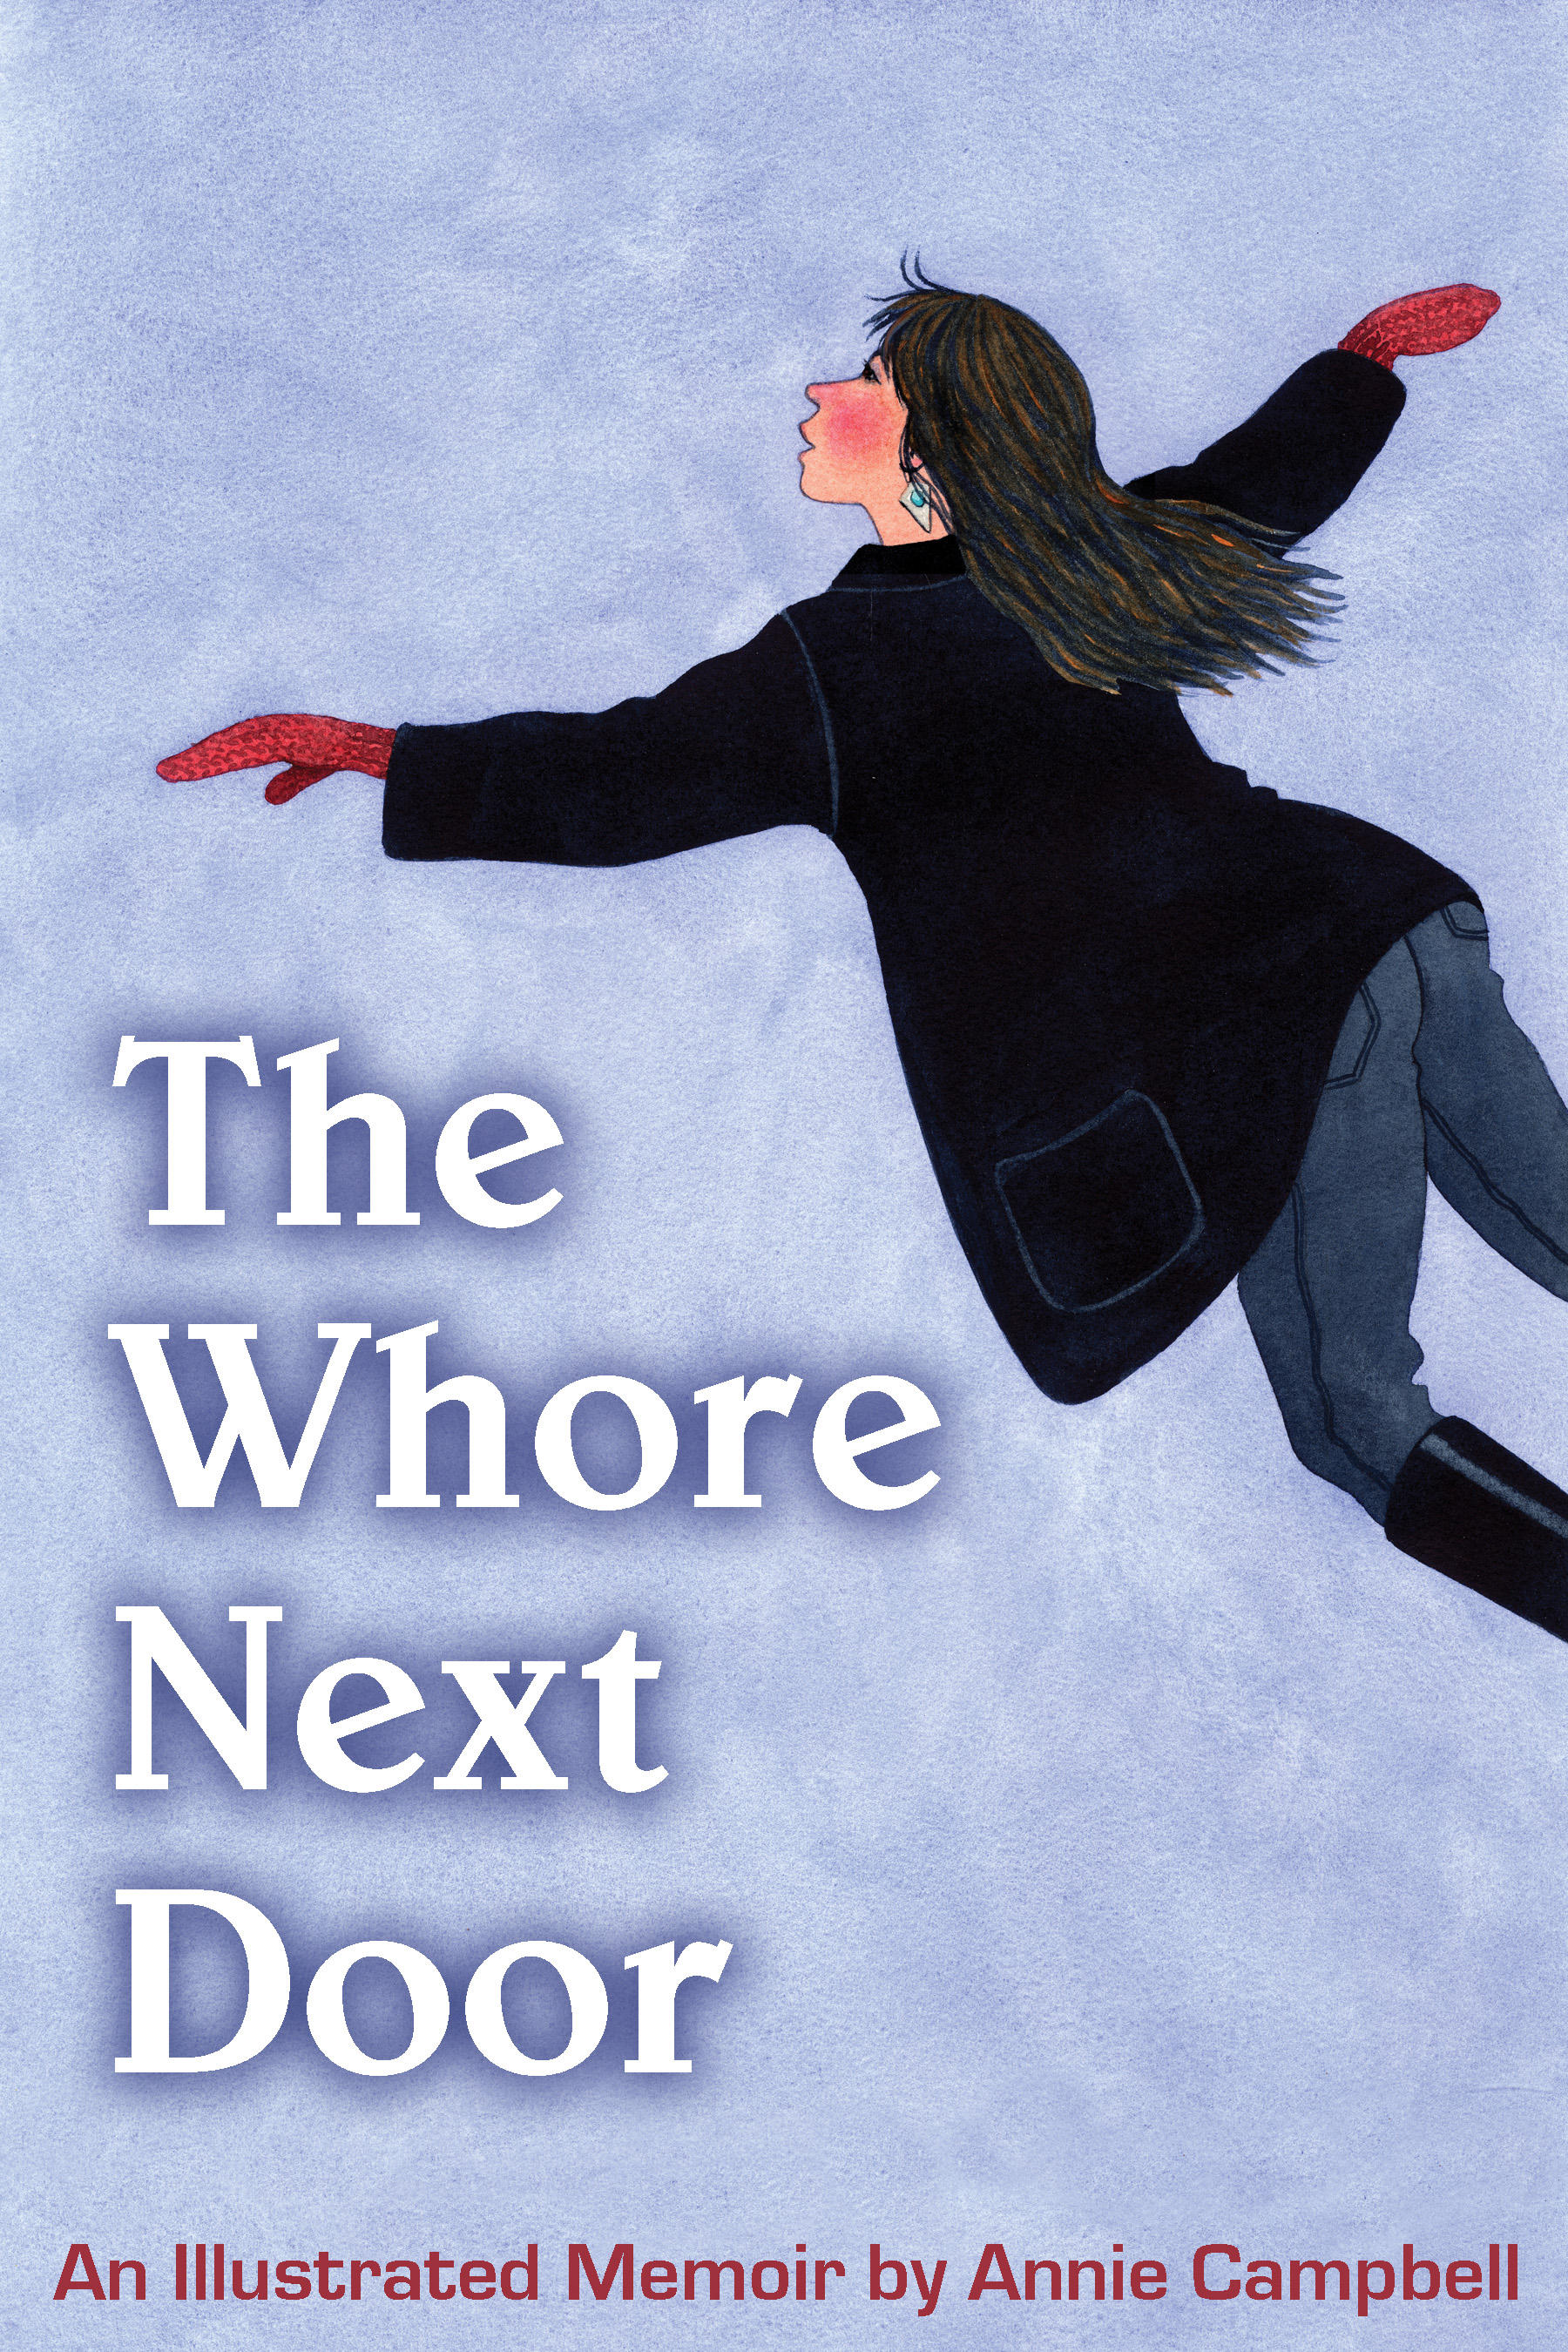 Book nook the whore next door by annie campbell wyso have you ever considered writing your memoir have you had an interesting life do you believe you can express yourself in print in a compelling way solutioingenieria Choice Image